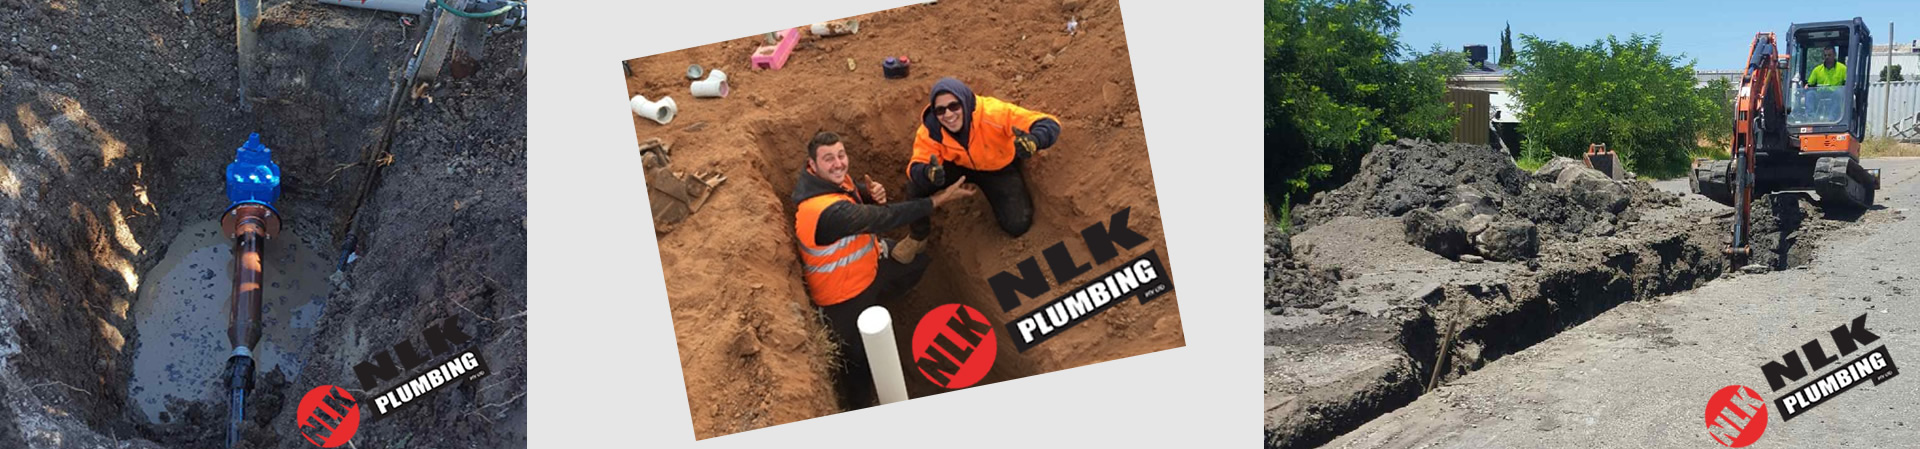 Is Hiring Plumber A Solution To Blocked Drain Requirements? May Be!